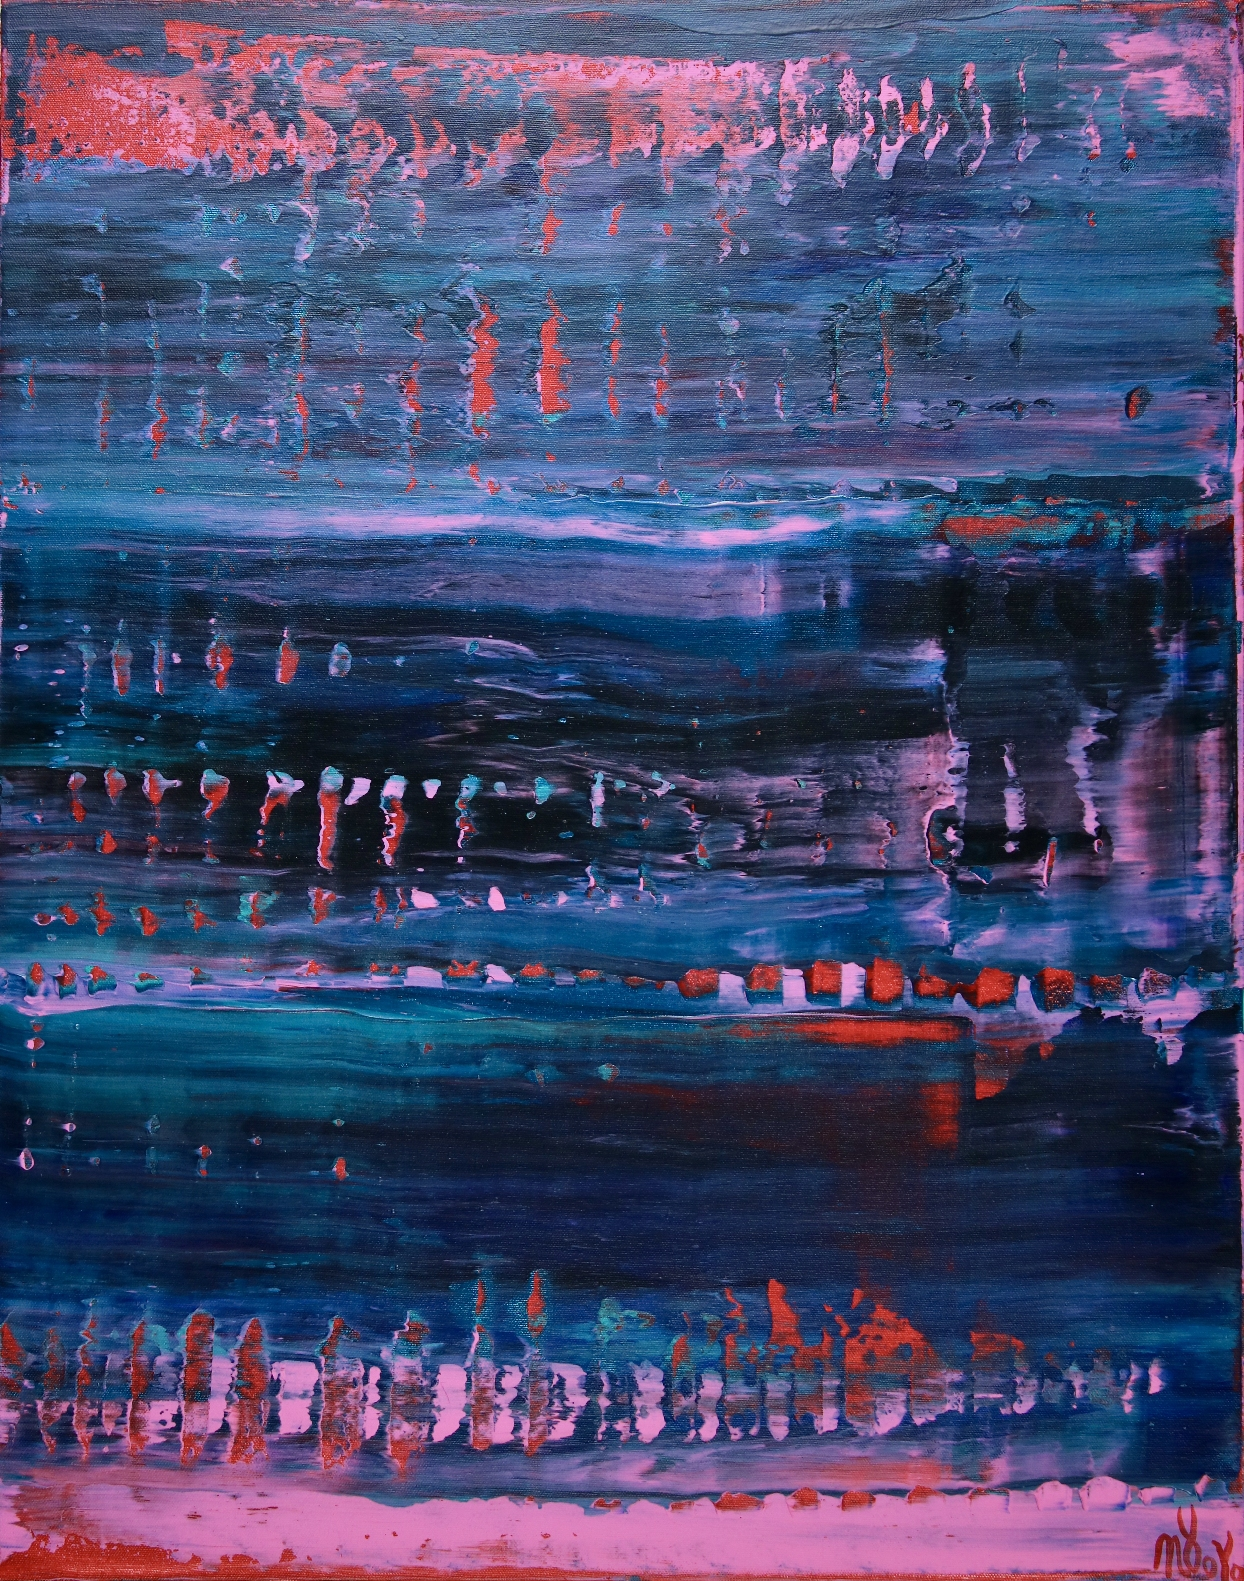 Blue with Red intrusions by Nestor Toro 22x28 - 2019 (Ready To Hang)